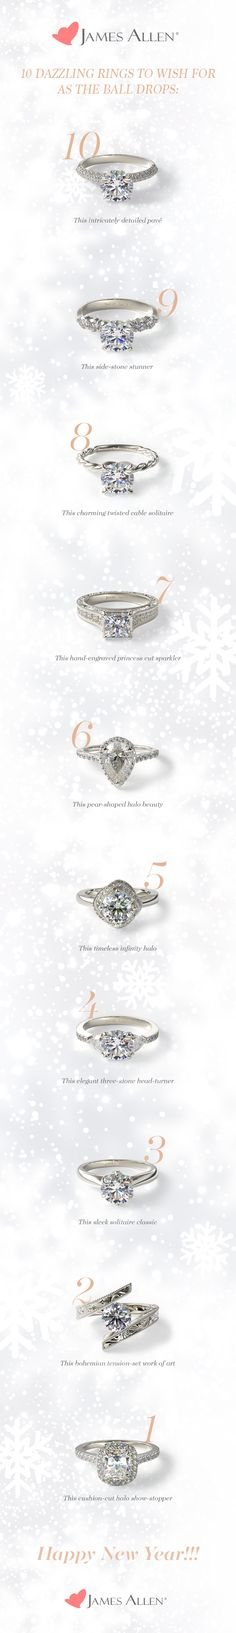 Dazzling engagement rings for every style. Design your dream engagement ring and make 2016 the best year yet! Which of these beauties will you be wishing for as the clock strikes midnight? | #jamesallenrings